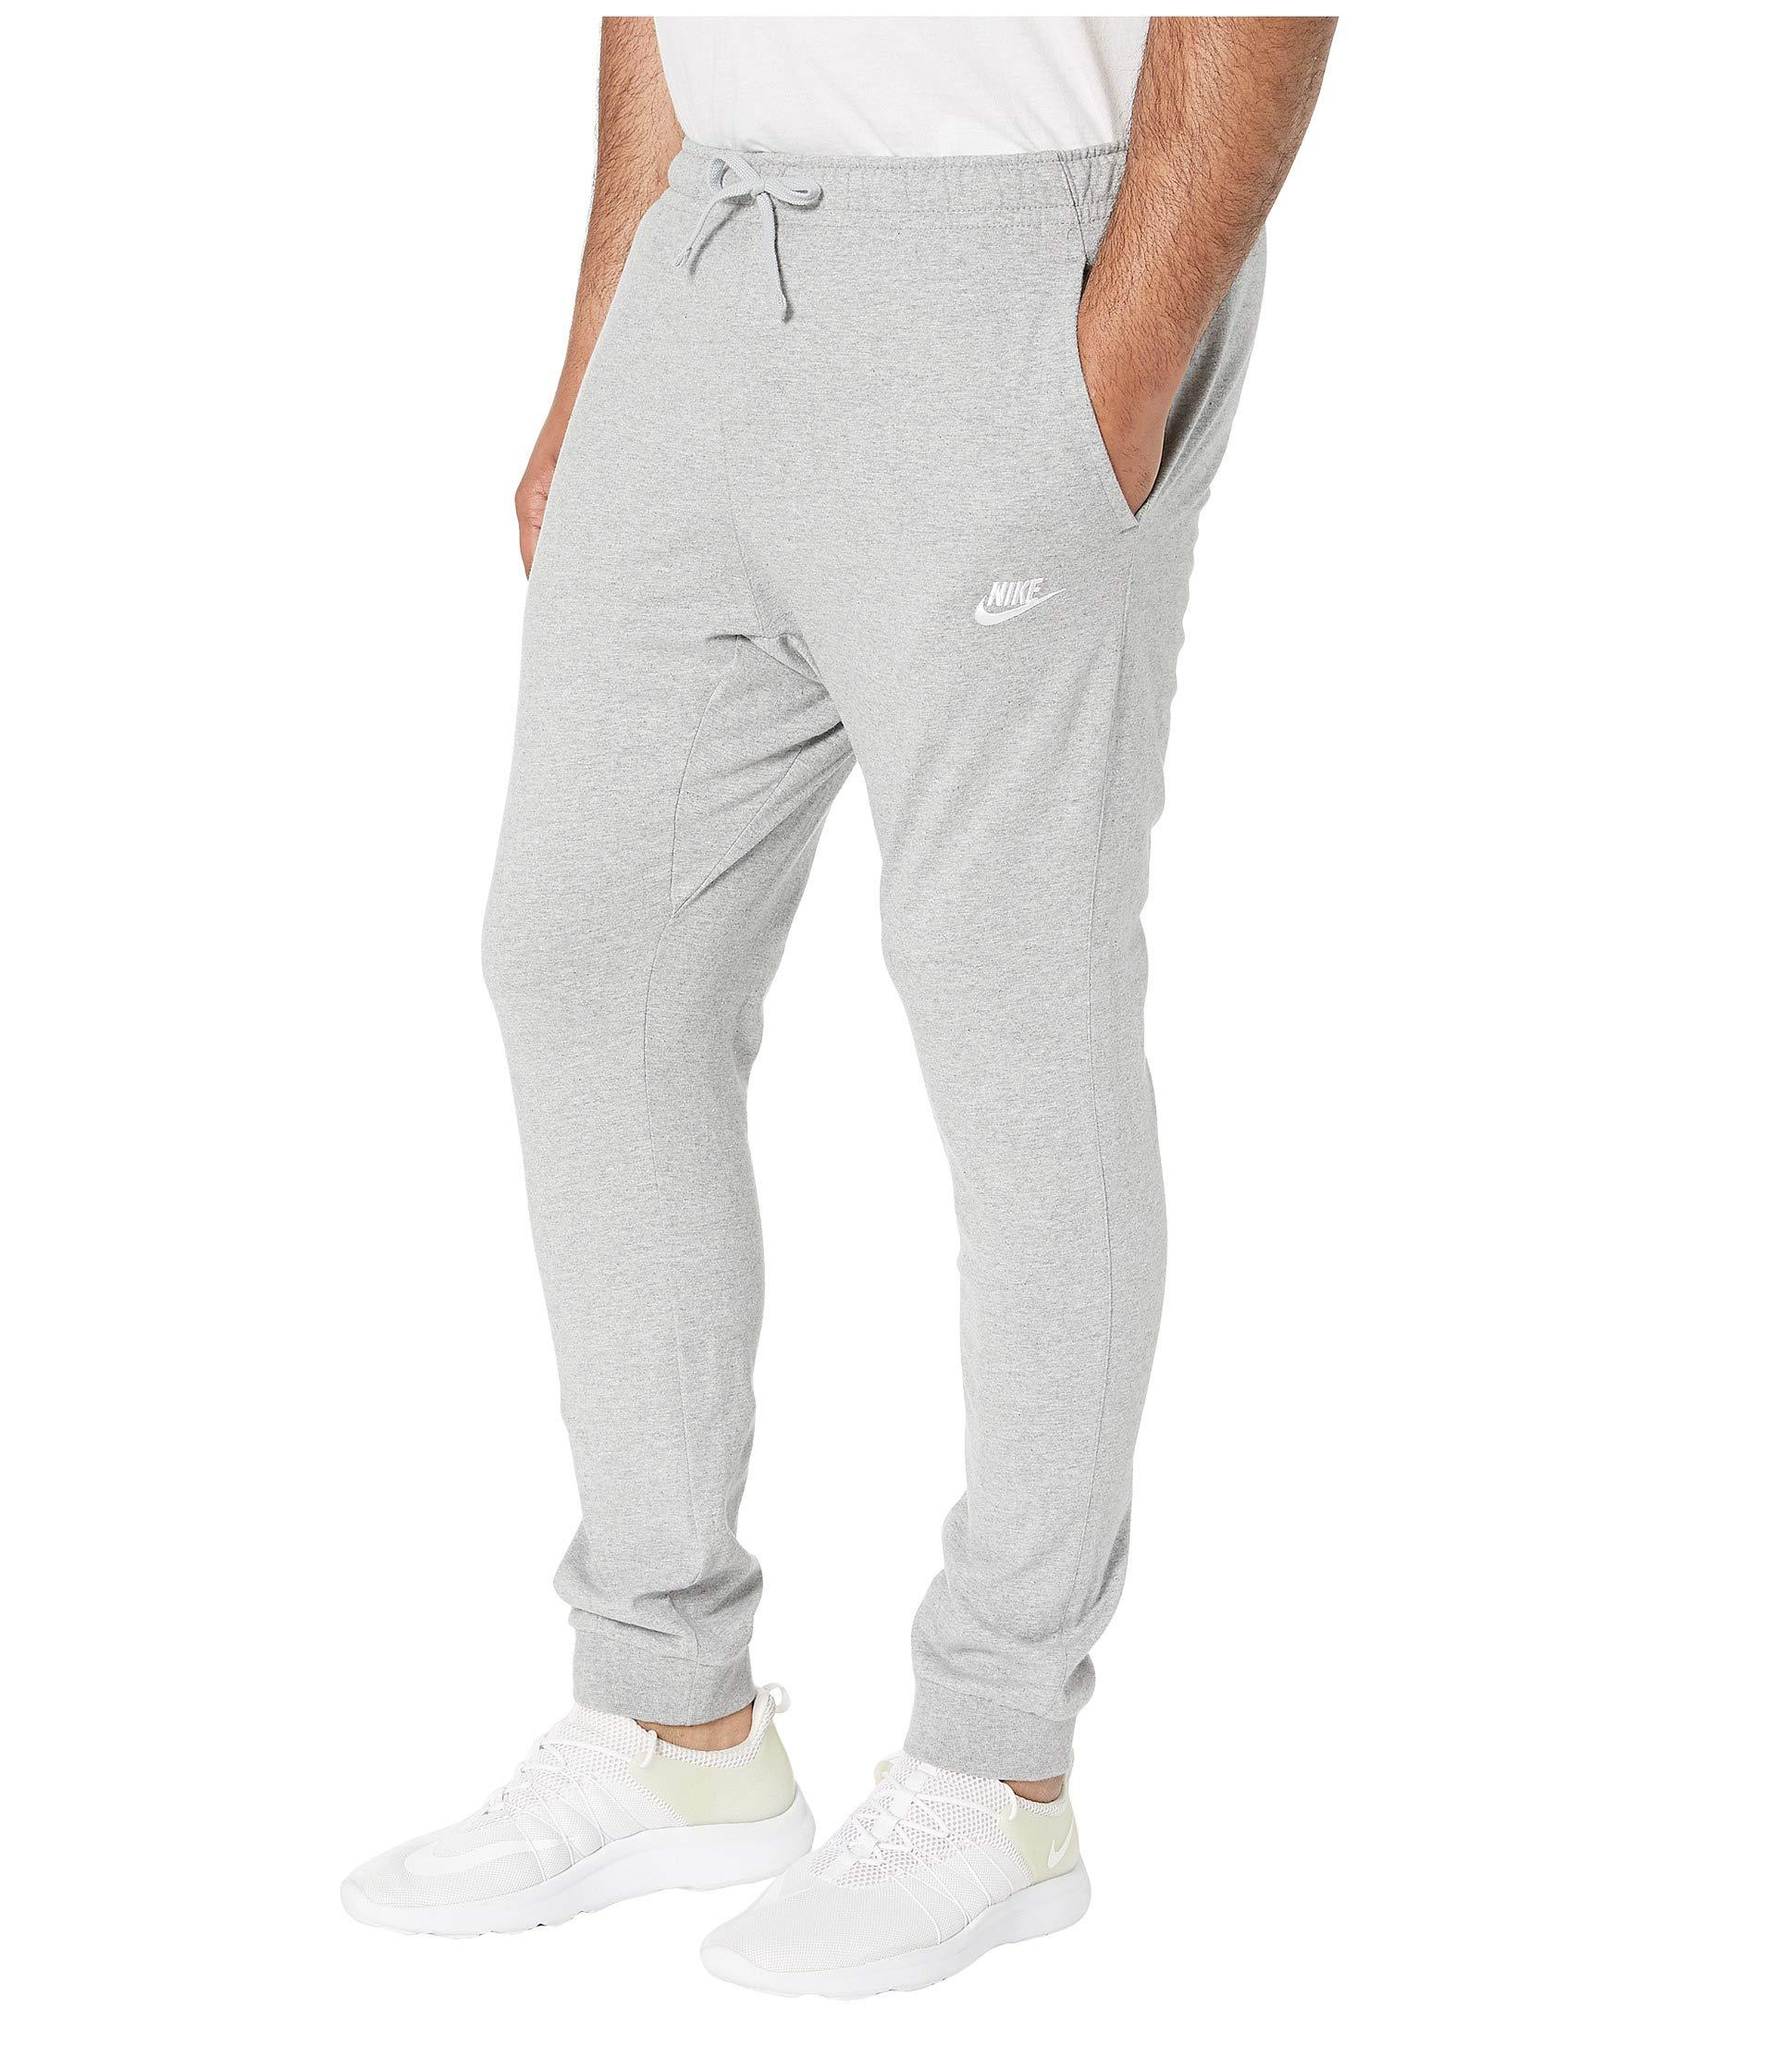 d656a1c8862f Lyst - Nike Big Tall Nsw Club Jersey Jogger (dark Grey Heather white) Men s  Casual Pants in Gray for Men